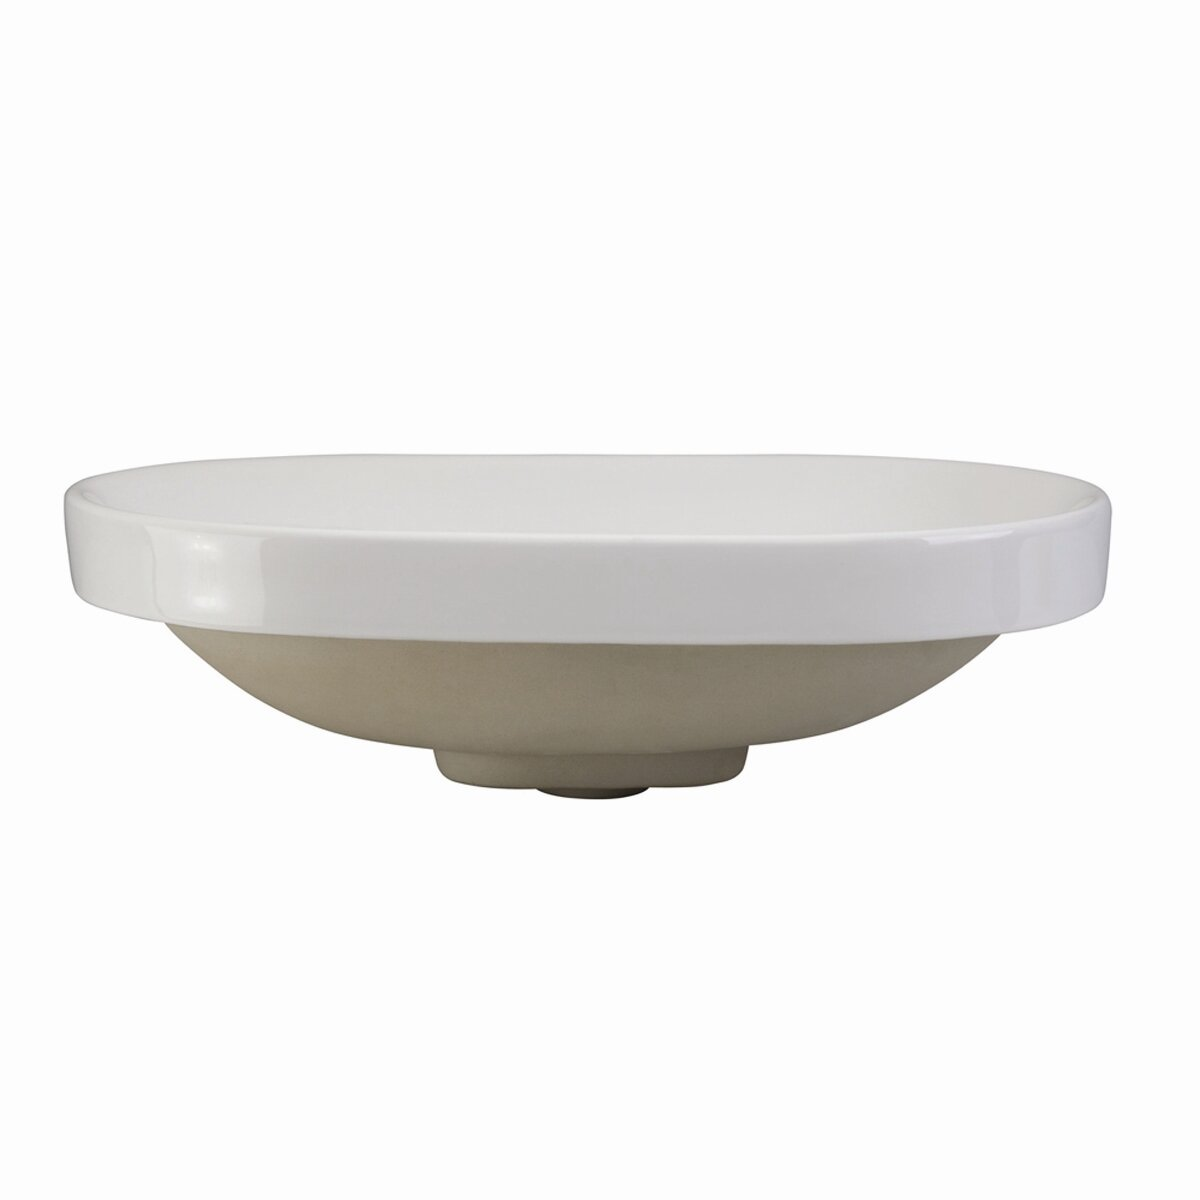 Decolav Classically Redefined Semi Recessed Oval Bathroom Sink Reviews Wayfair